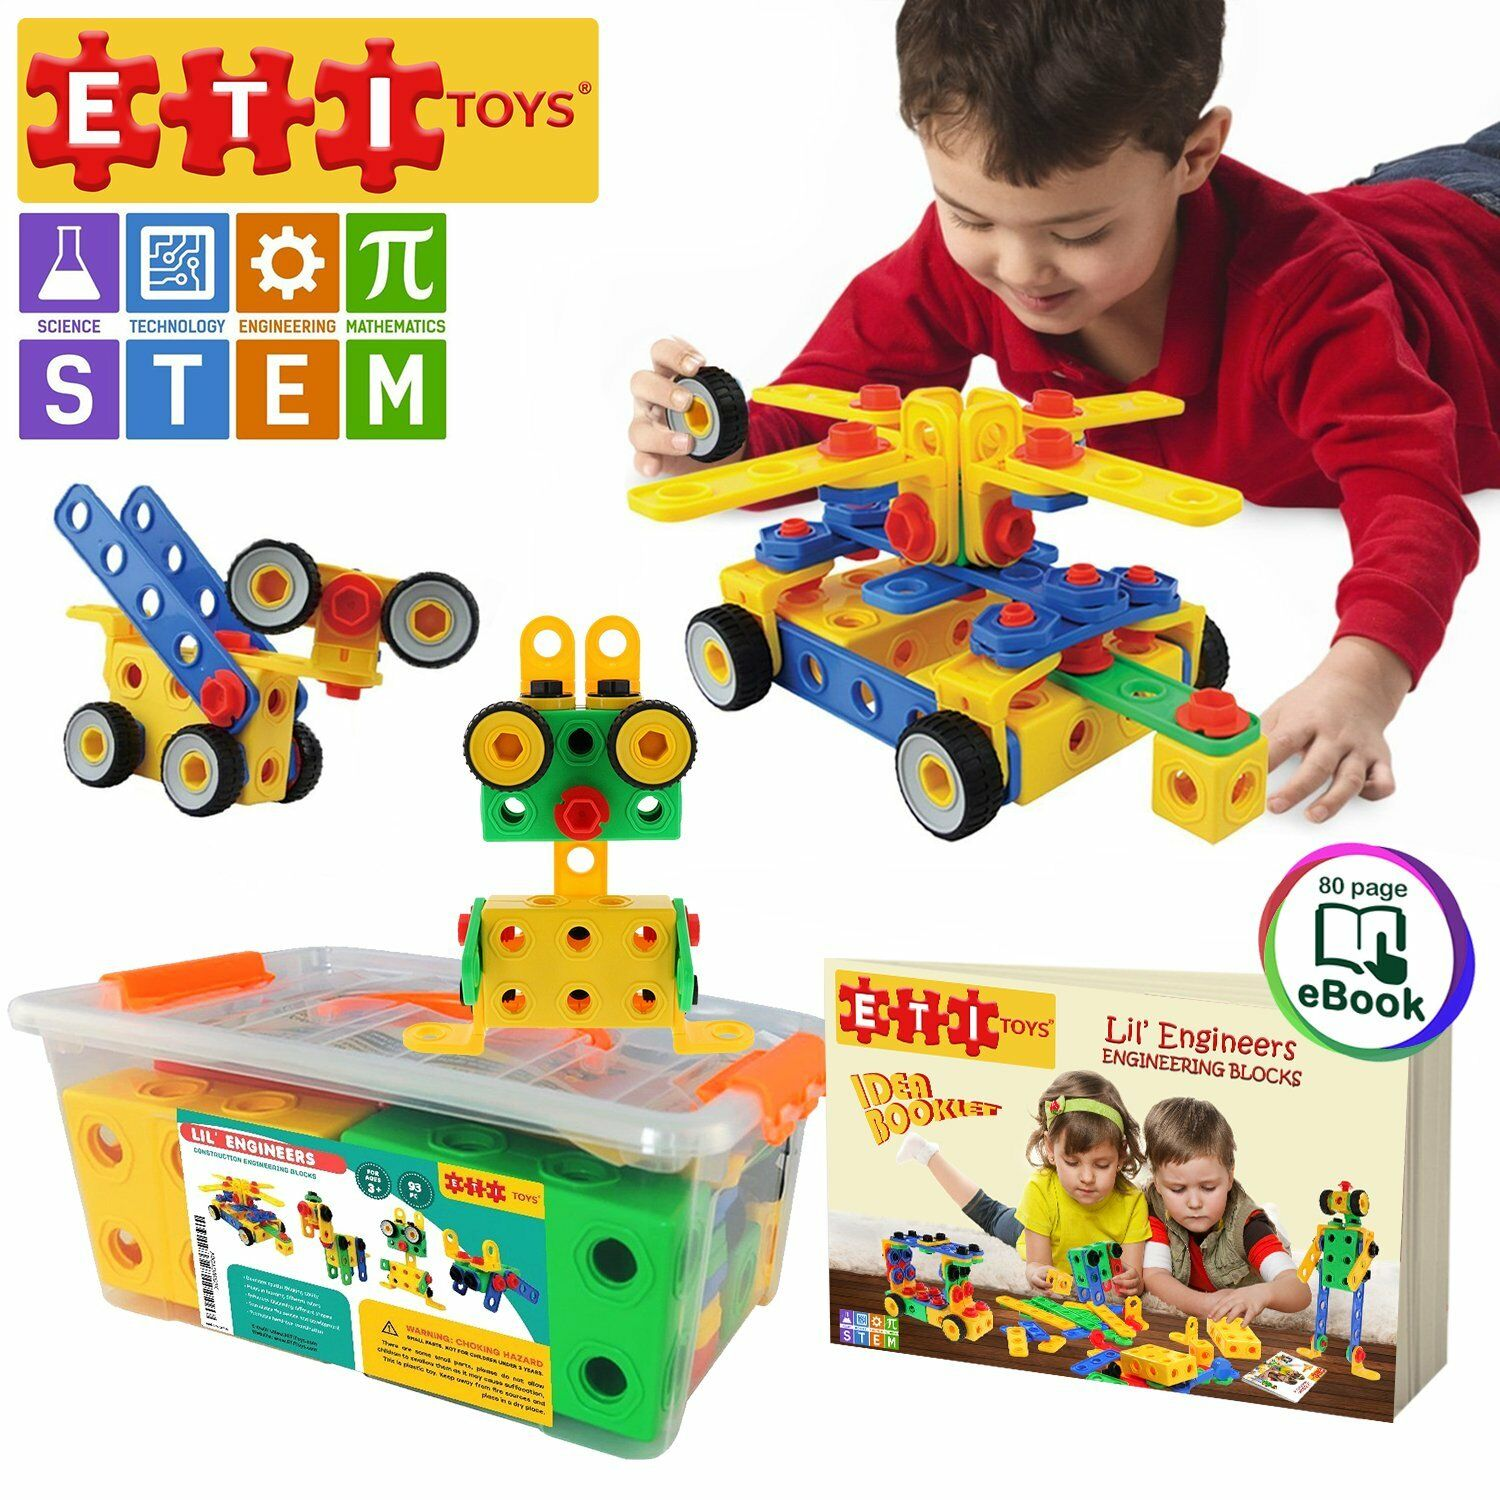 ETI Toys   STEM Learning   Original 101 Piece Educational Construction